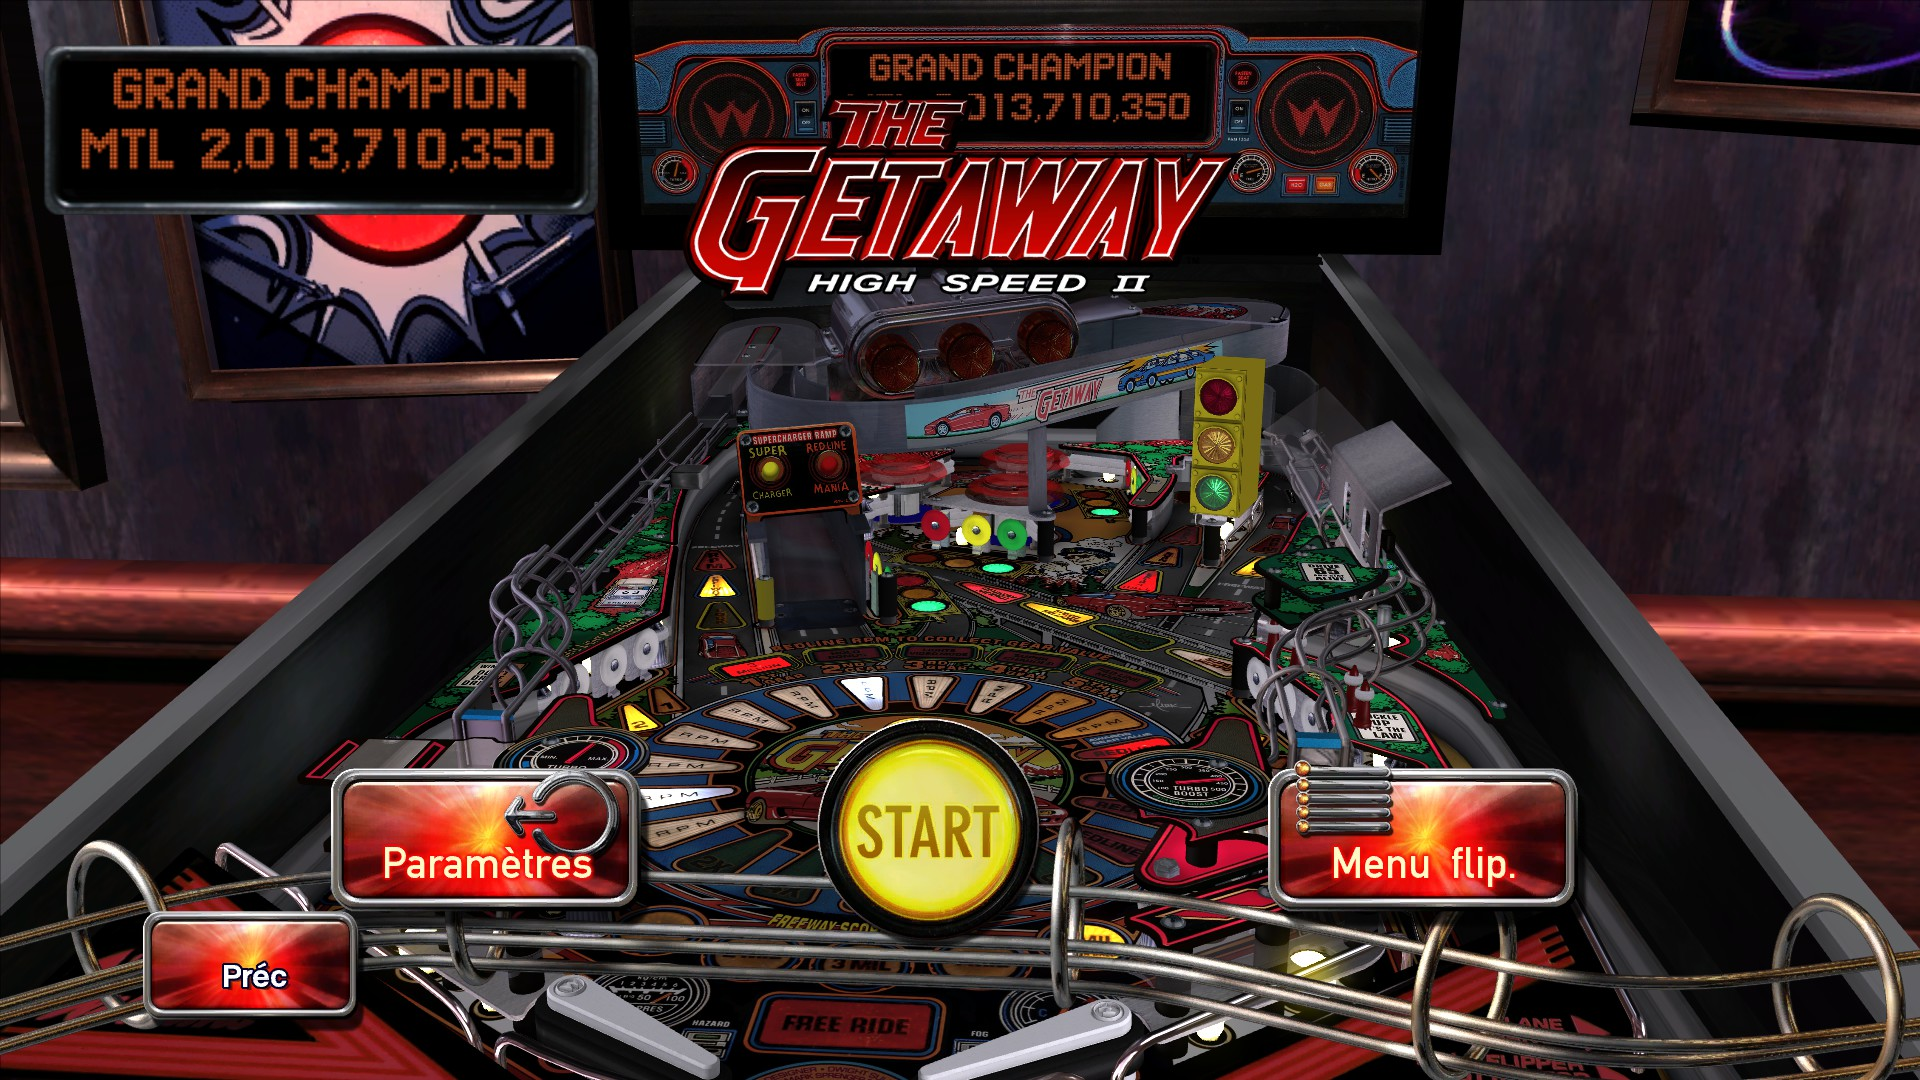 Mantalow: Pinball Arcade: The Getaway: High Speed II (PC) 2,013,710,350 points on 2015-12-21 12:15:17